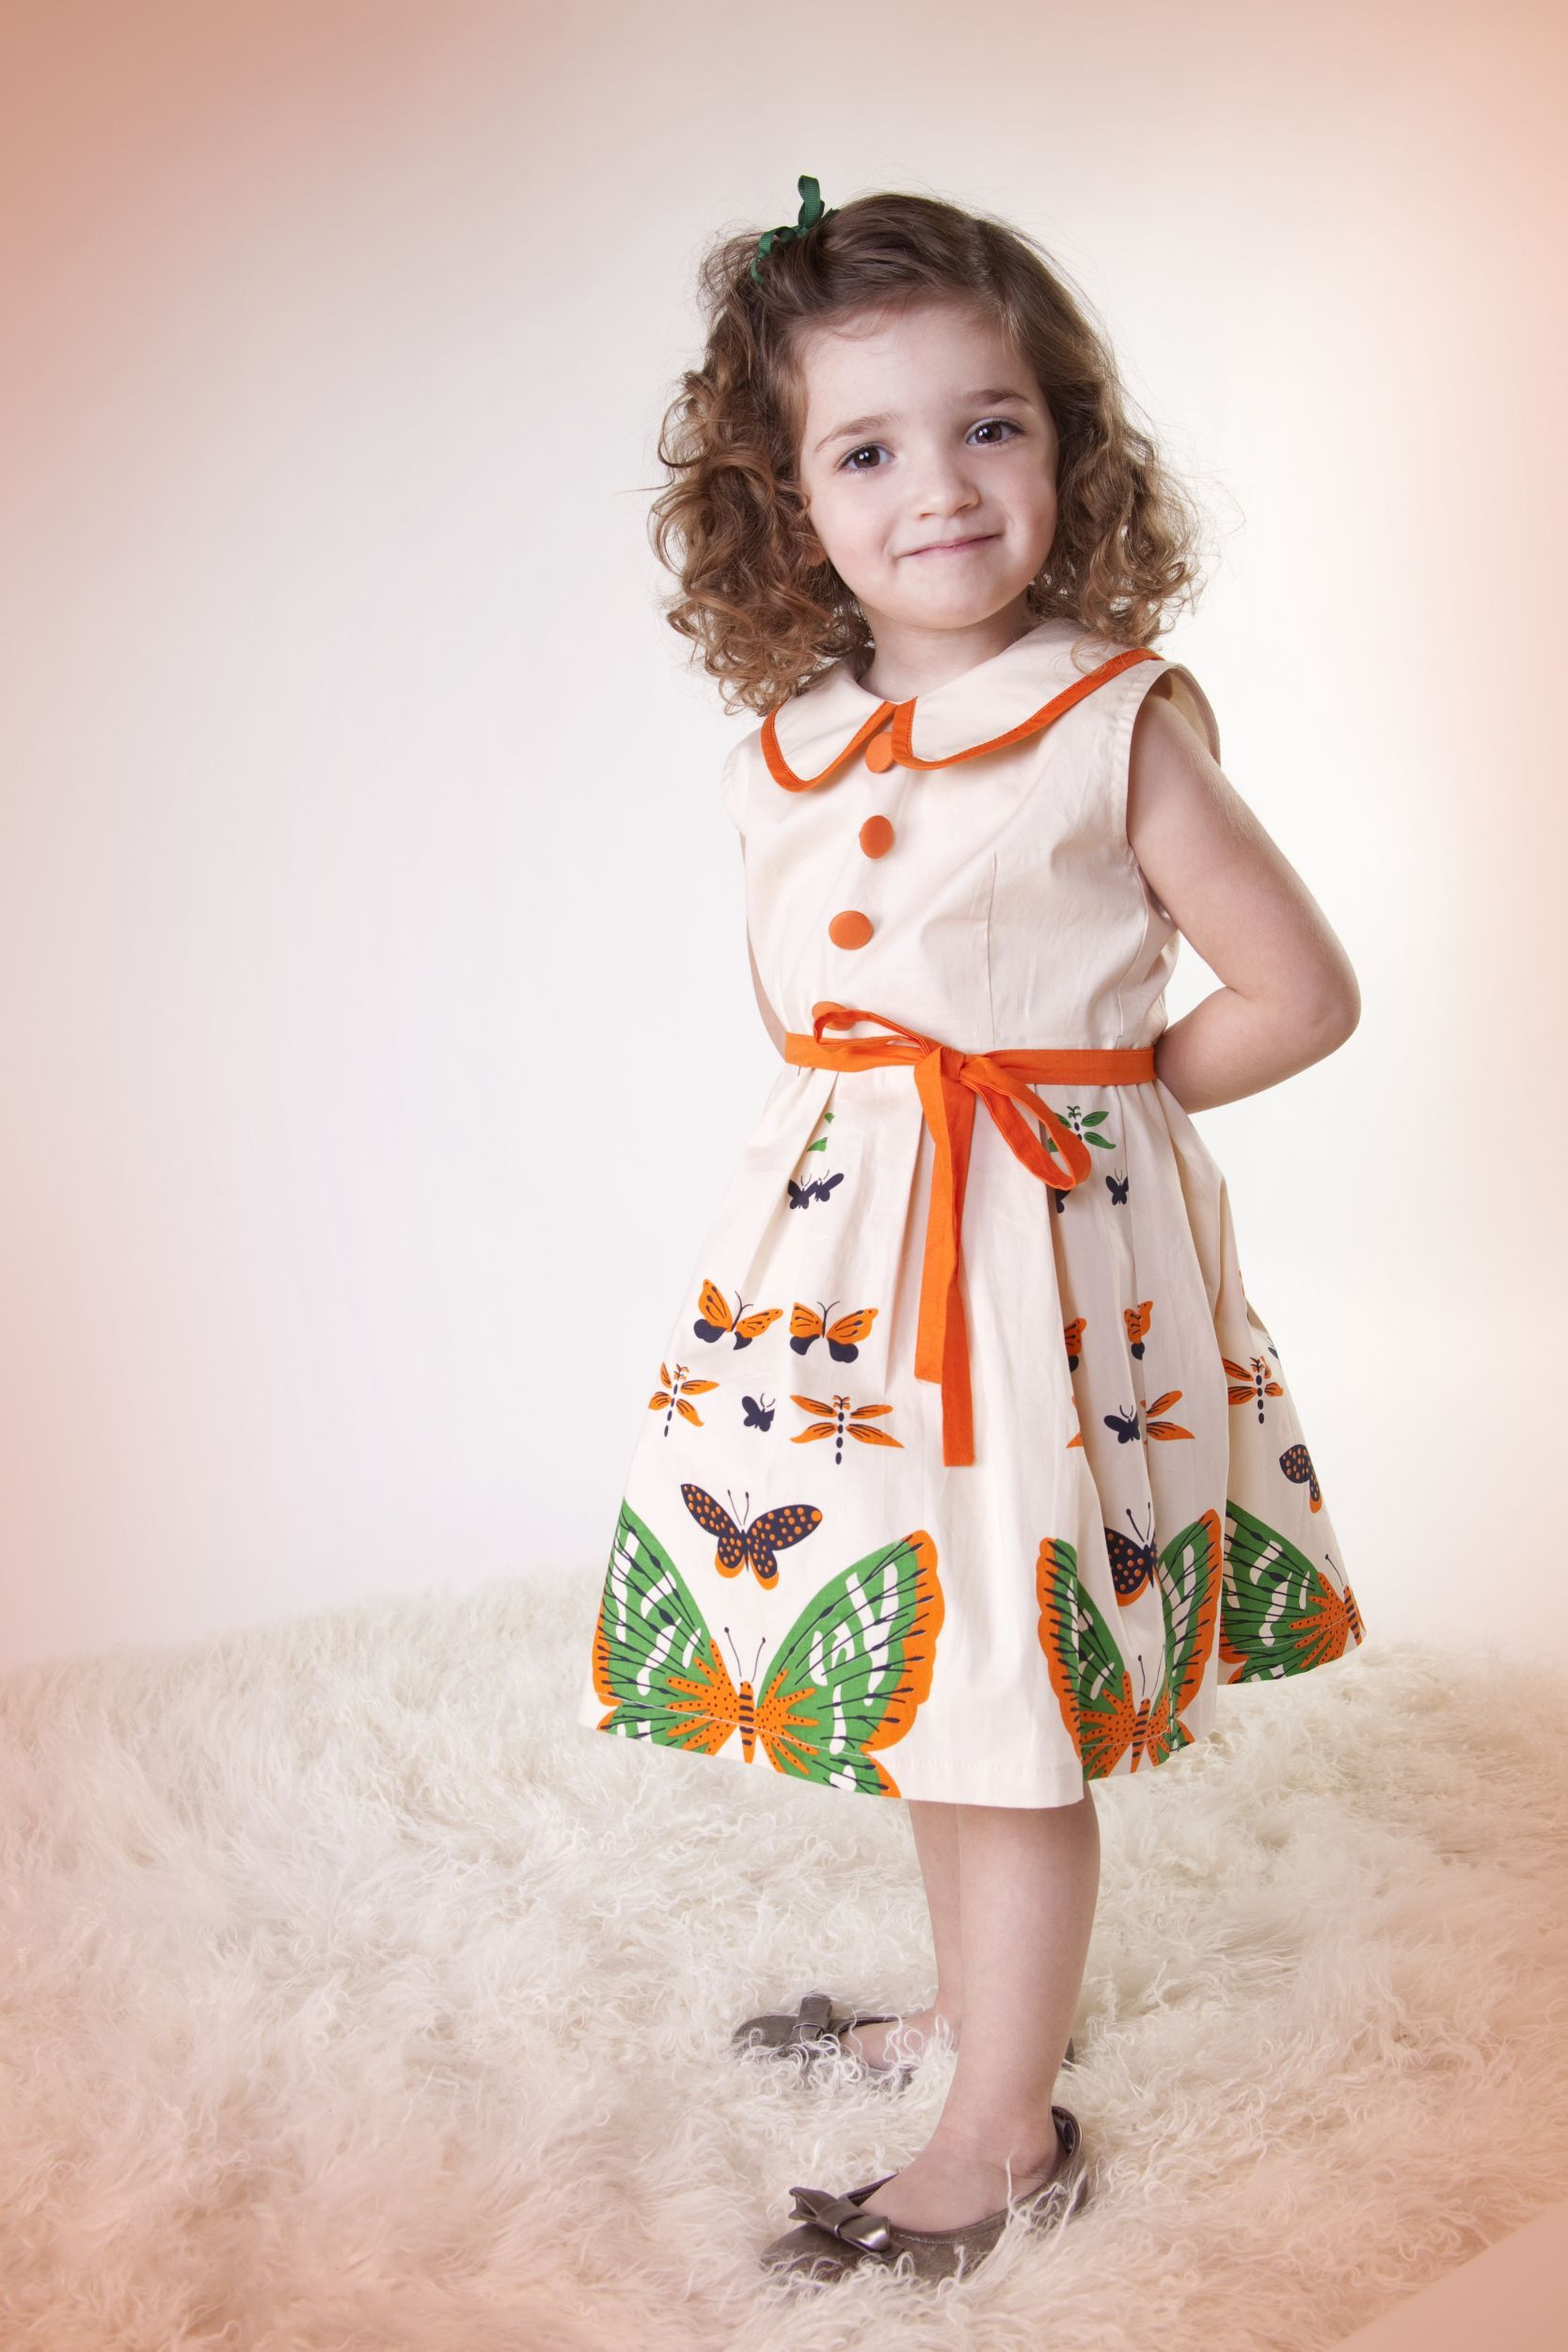 Kids Outfits Clothes Fashion: 50s Style Clothing For Kids? LOVE!